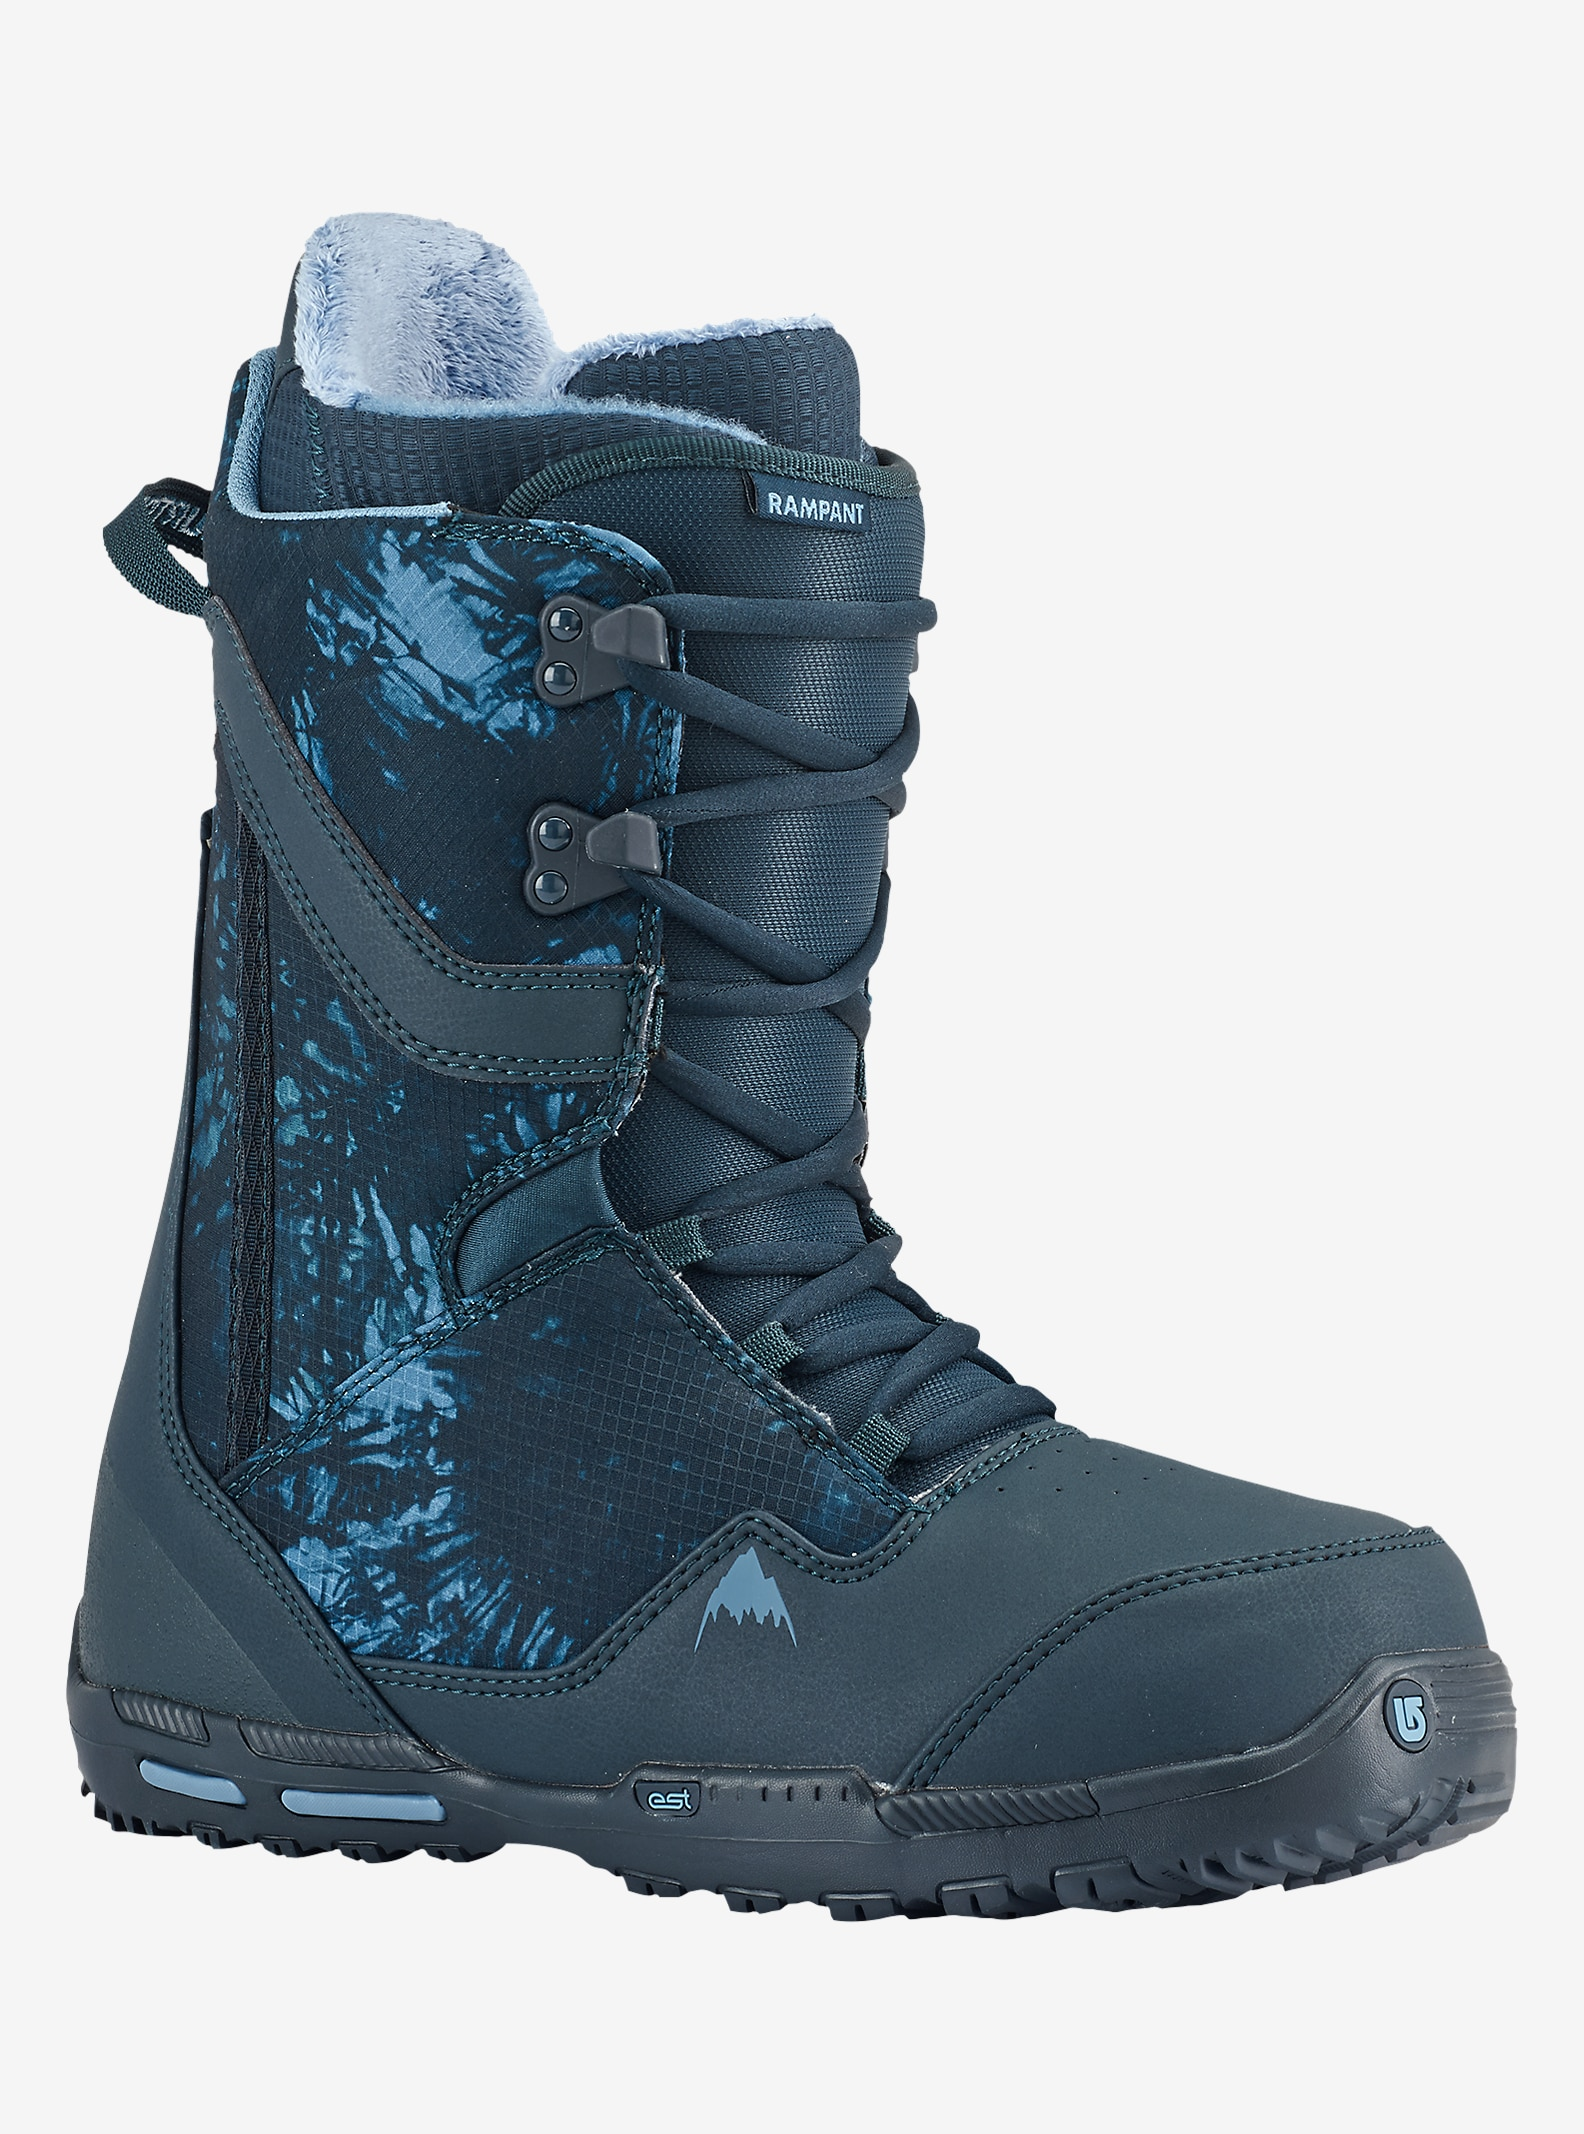 Burton Rampant Snowboard Boot shown in Blueprint